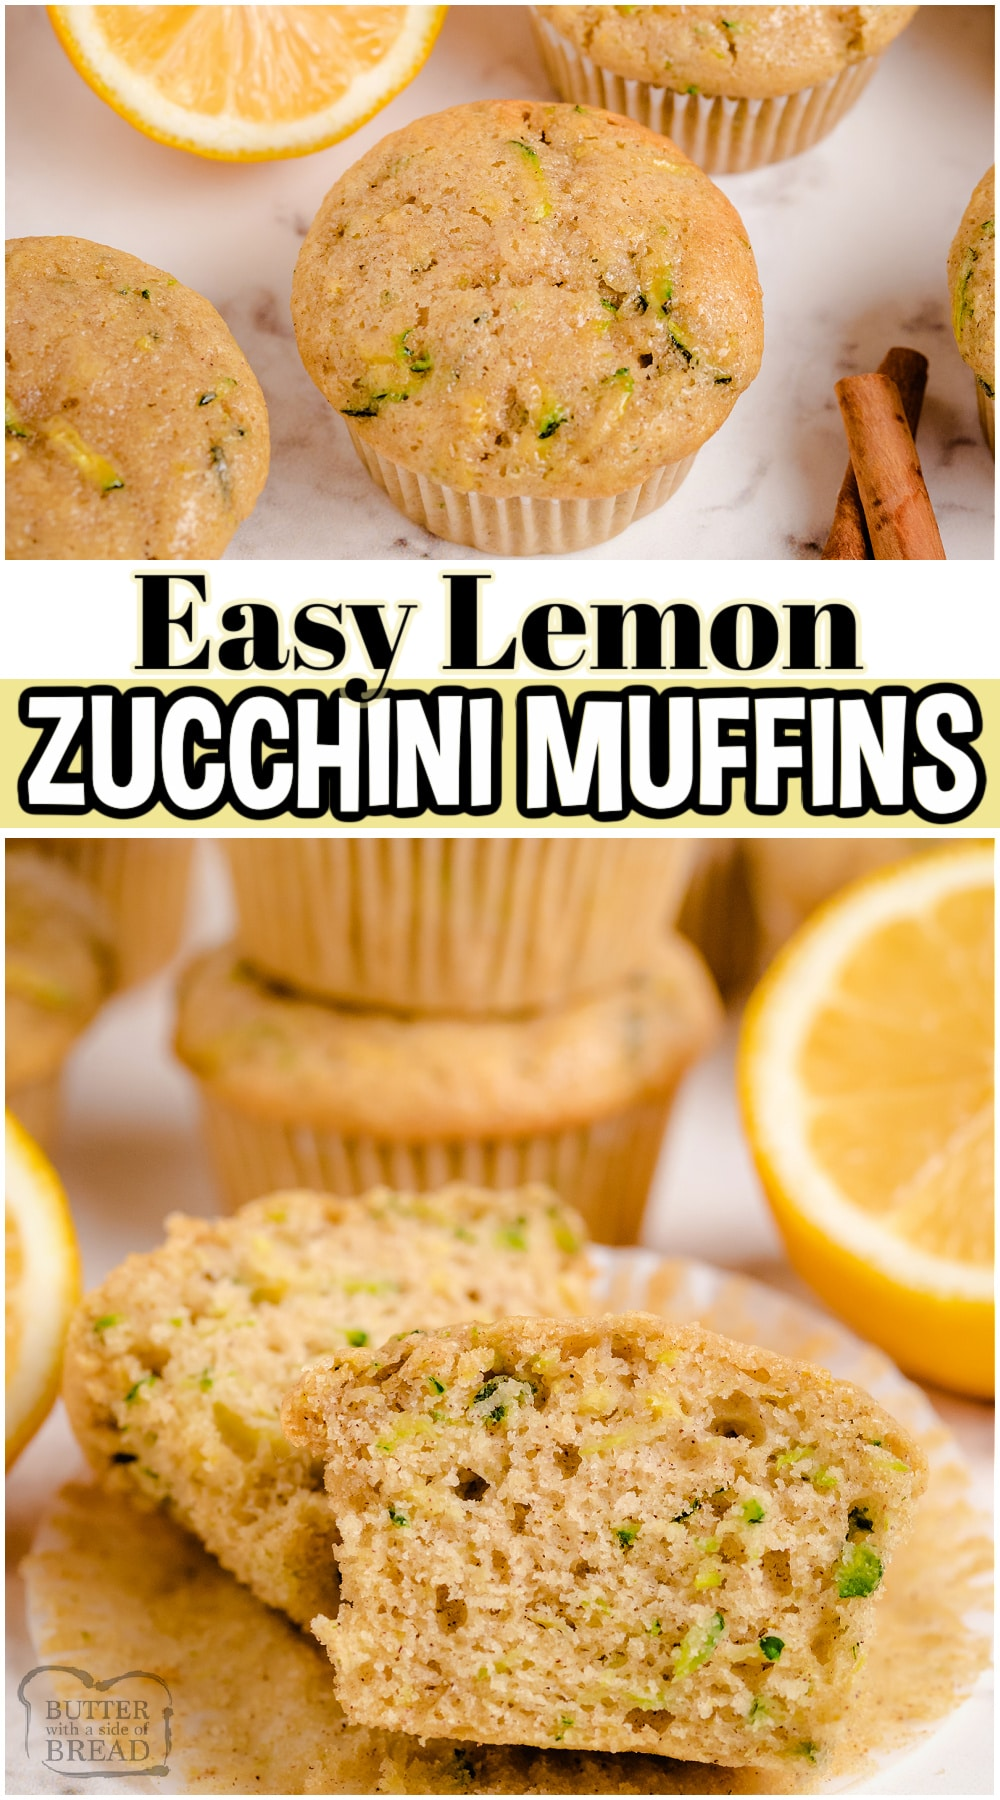 Tender Lemon Zucchini Muffins made with classic ingredients and fresh zucchini overflowing from the garden! Sweet homemade muffins spiced with vanilla and cinnamon & brushed with a tangy lemon glaze.